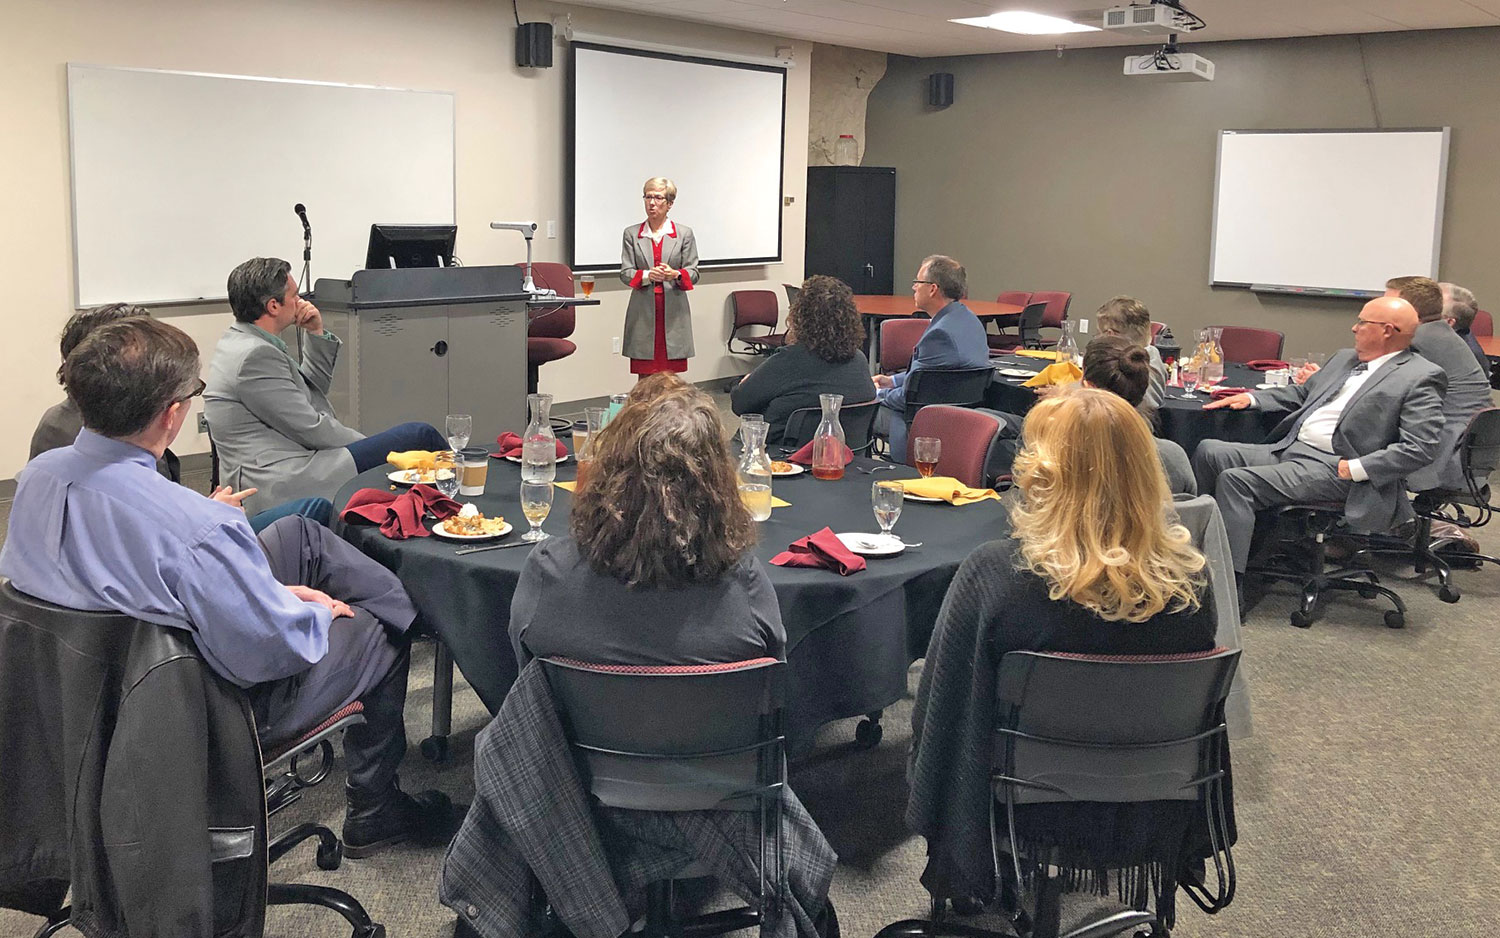 Ambassador Canavan provides a presentation to Park University faculty and staff during a luncheon on the campus Dec. 4, 2019.